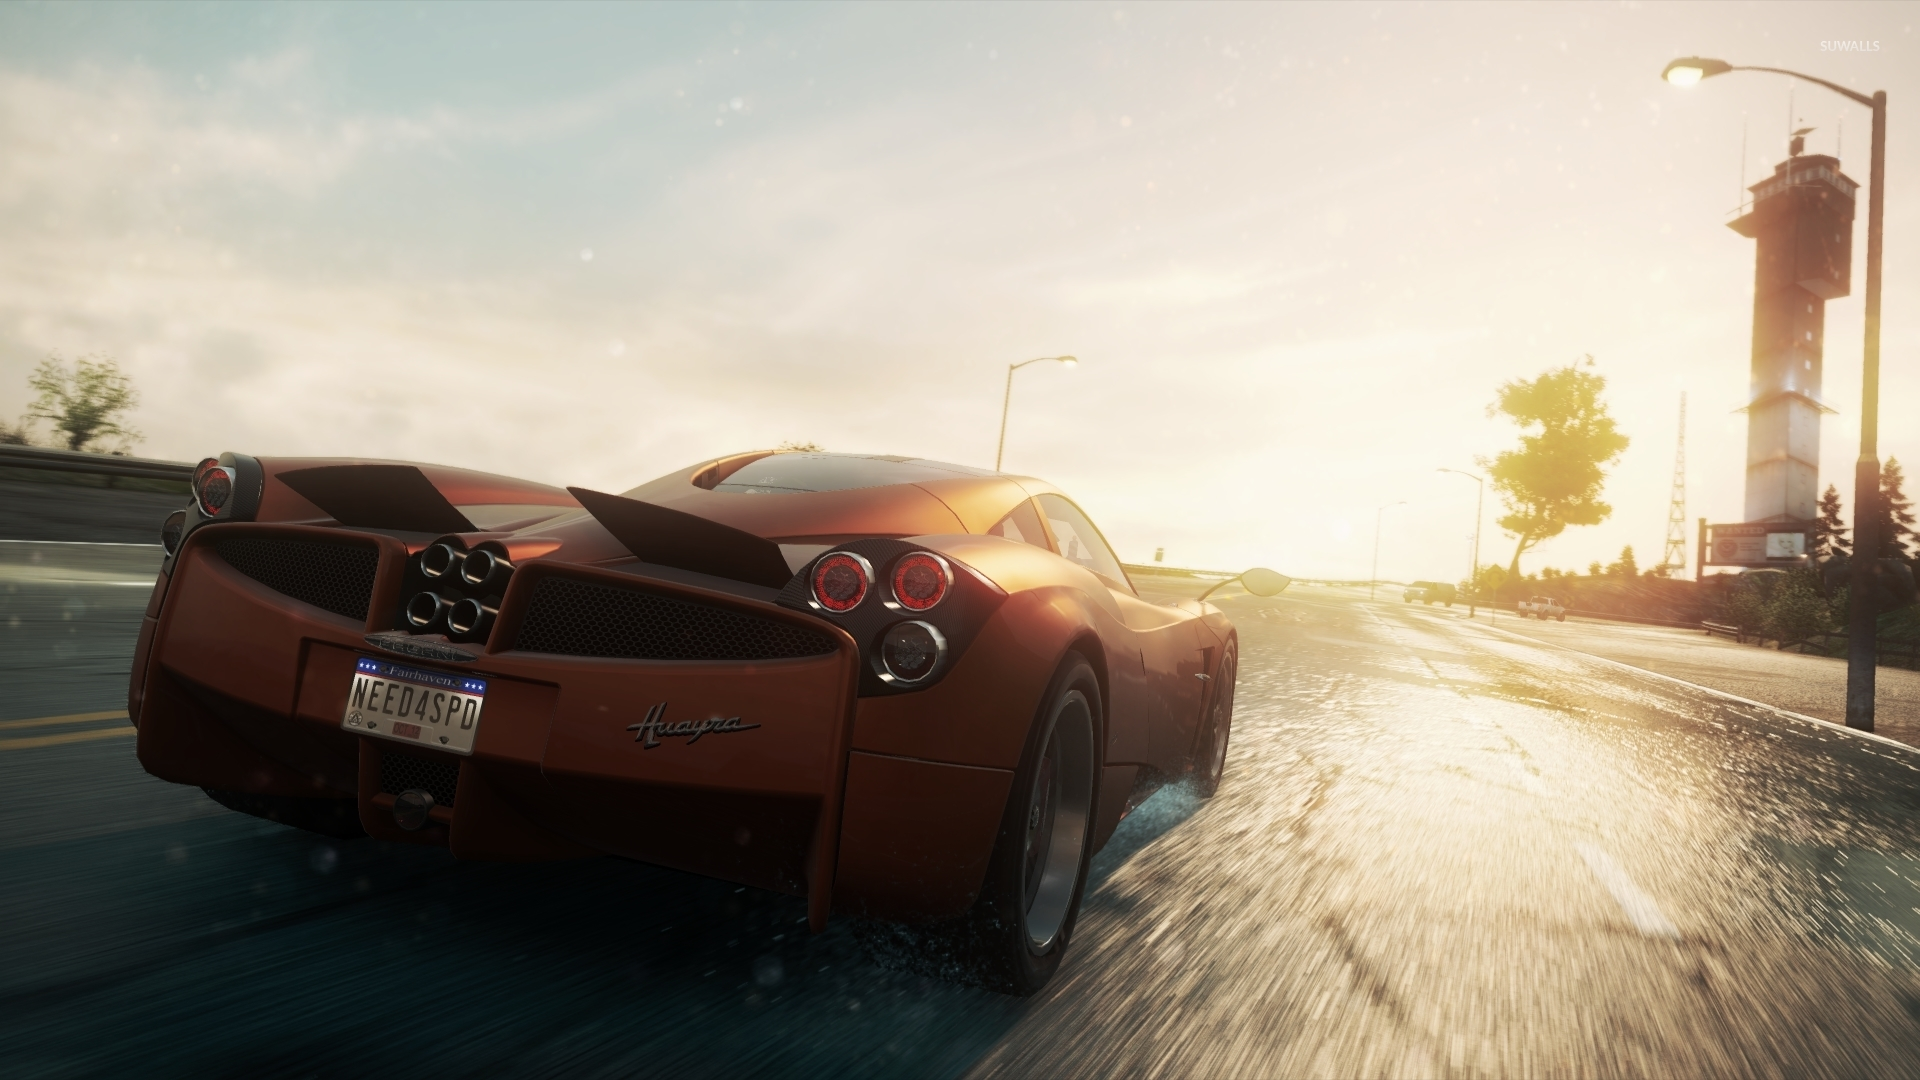 pagani huayra - need for speed: most wanted wallpaper - game